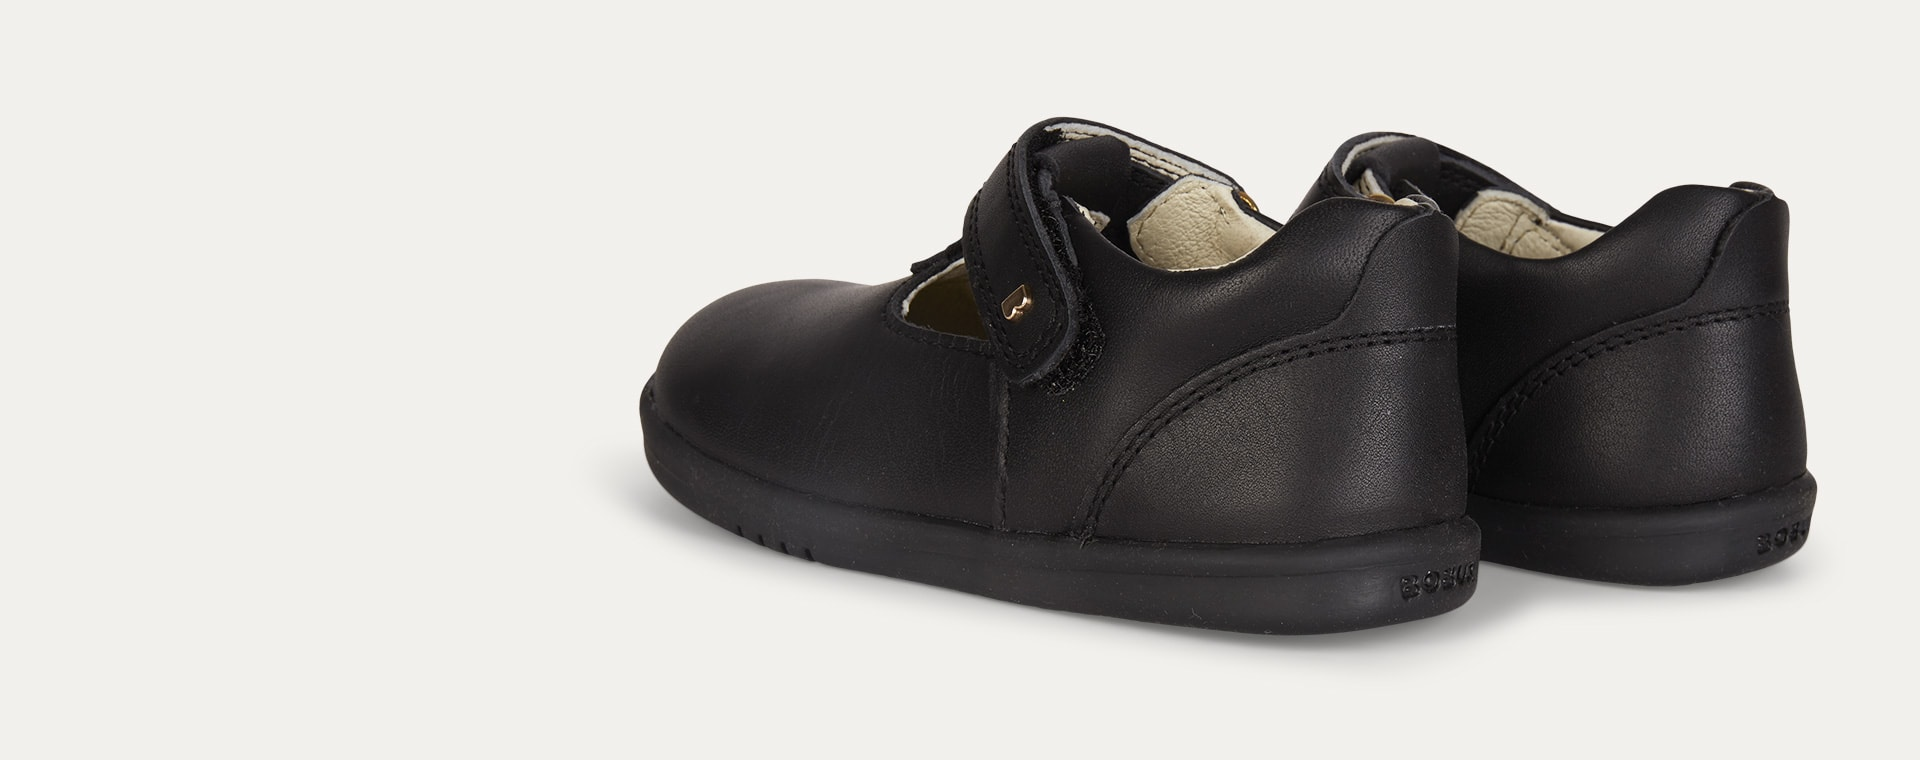 Black Bobux I-Walk Louise T-bar Shoe